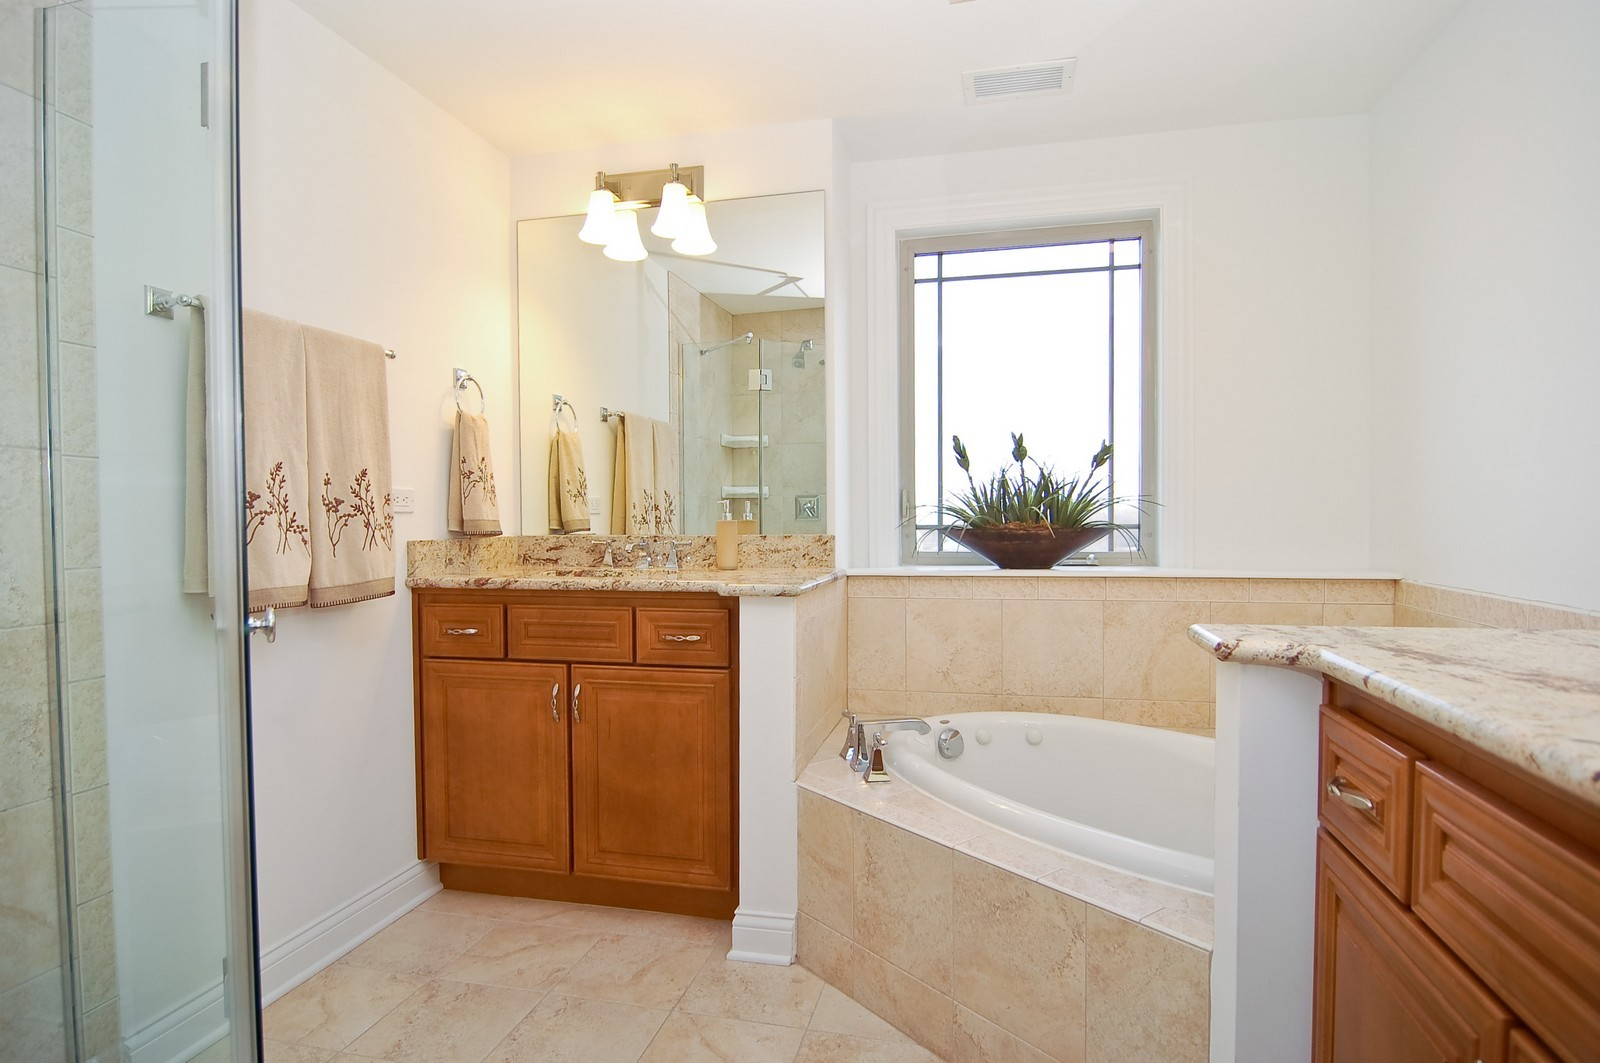 Real Estate Photography - 200- 7B Lake Street, St Joseph, MI, 49085 - Master Bathroom